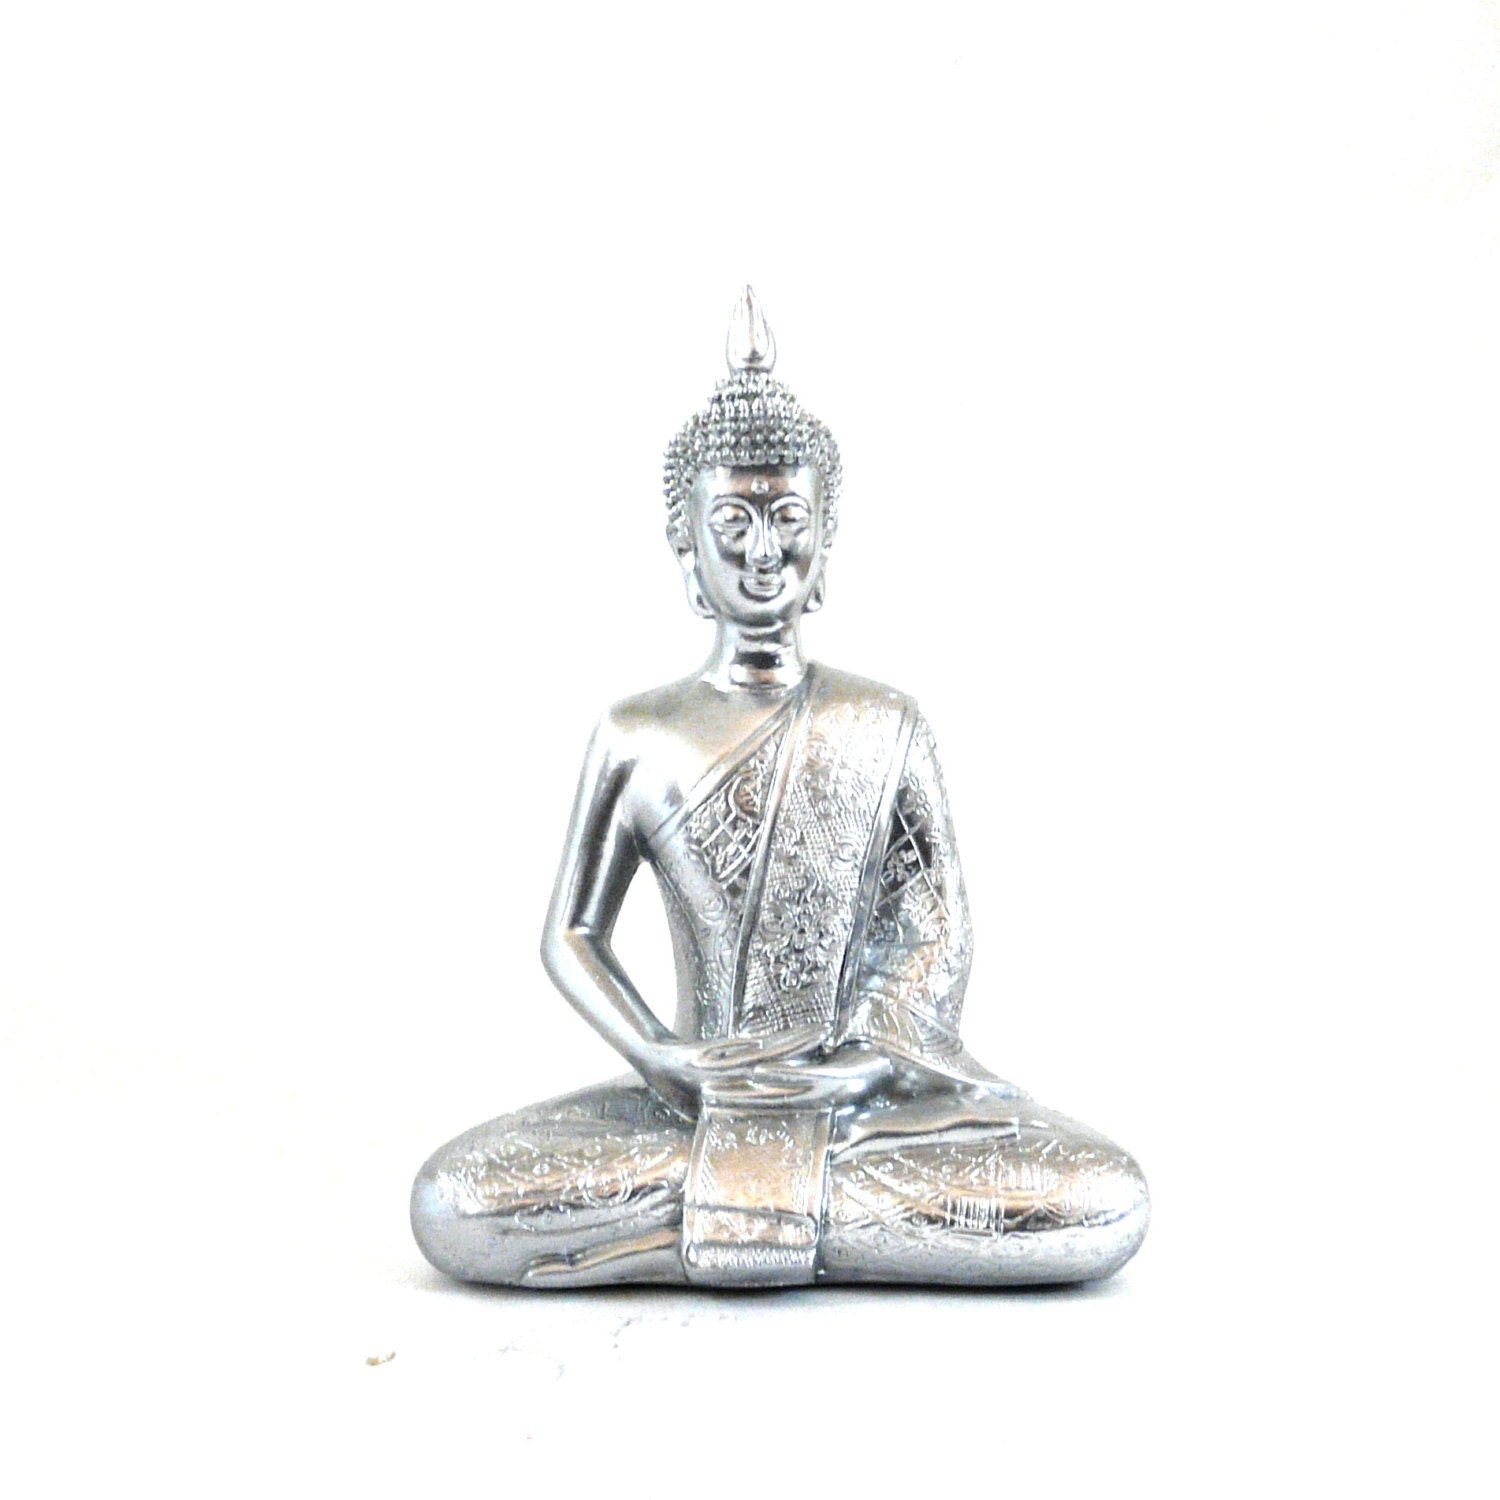 Https Etsy Com Listing 160886440 Buddha Statue Metallic Silver Chrome